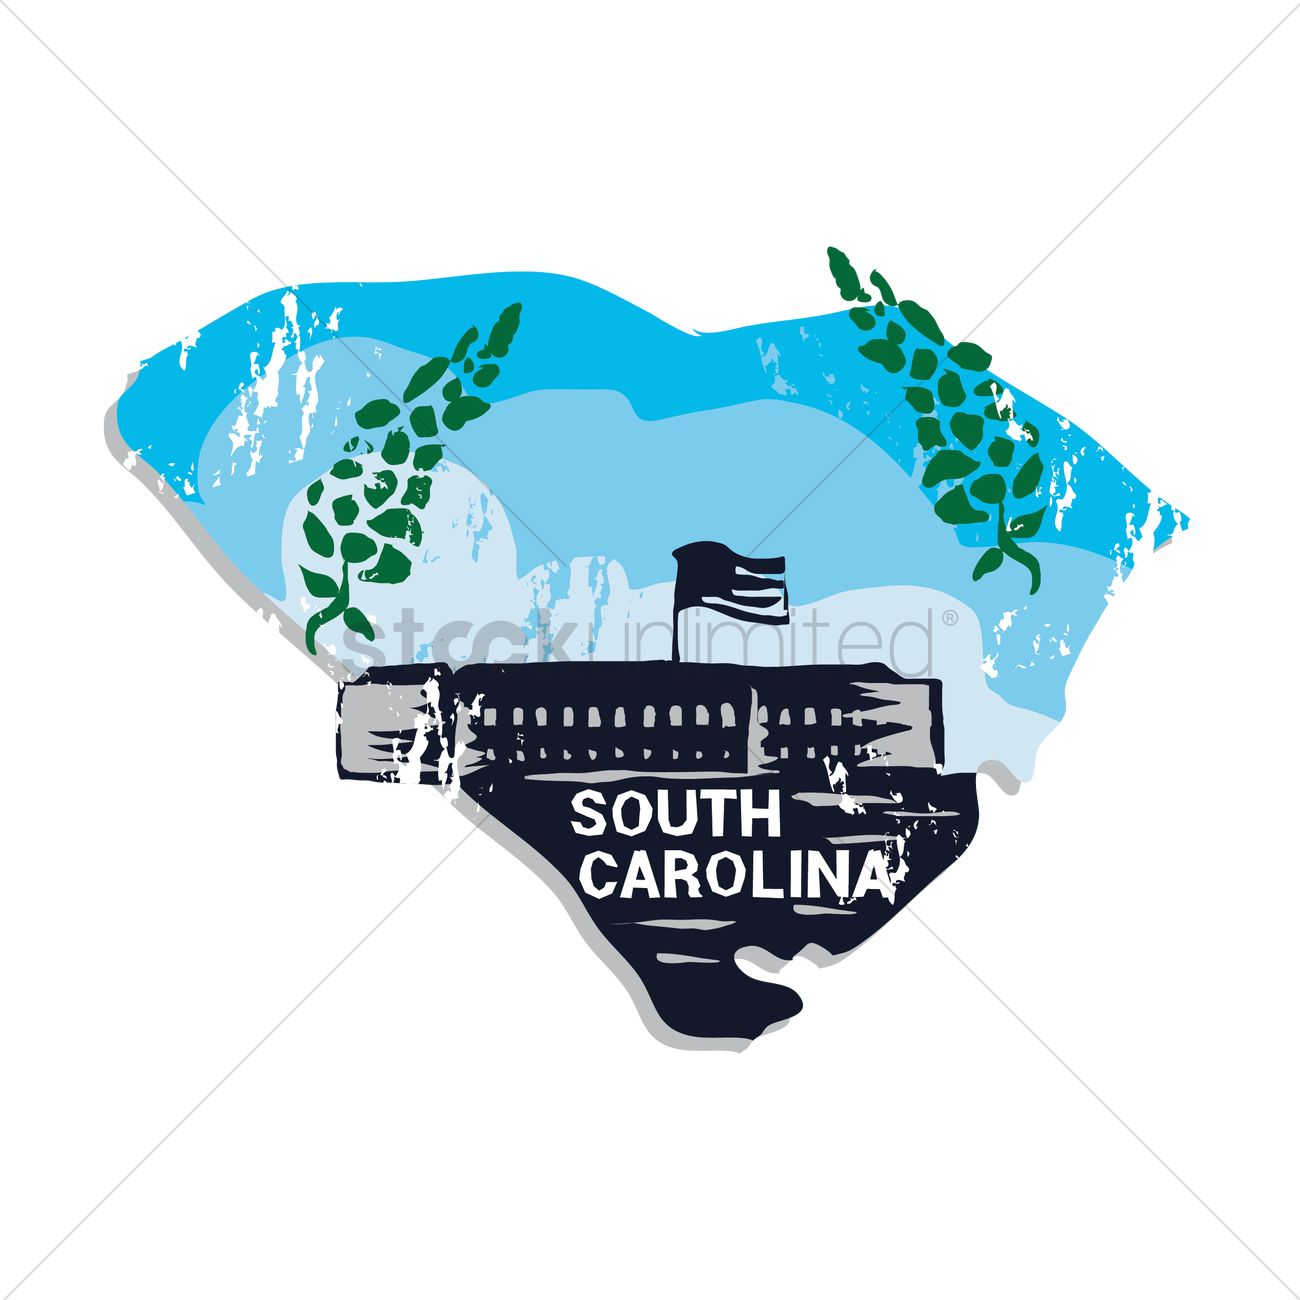 Free South Carolina State Vector Image 1551914 Stockunlimited